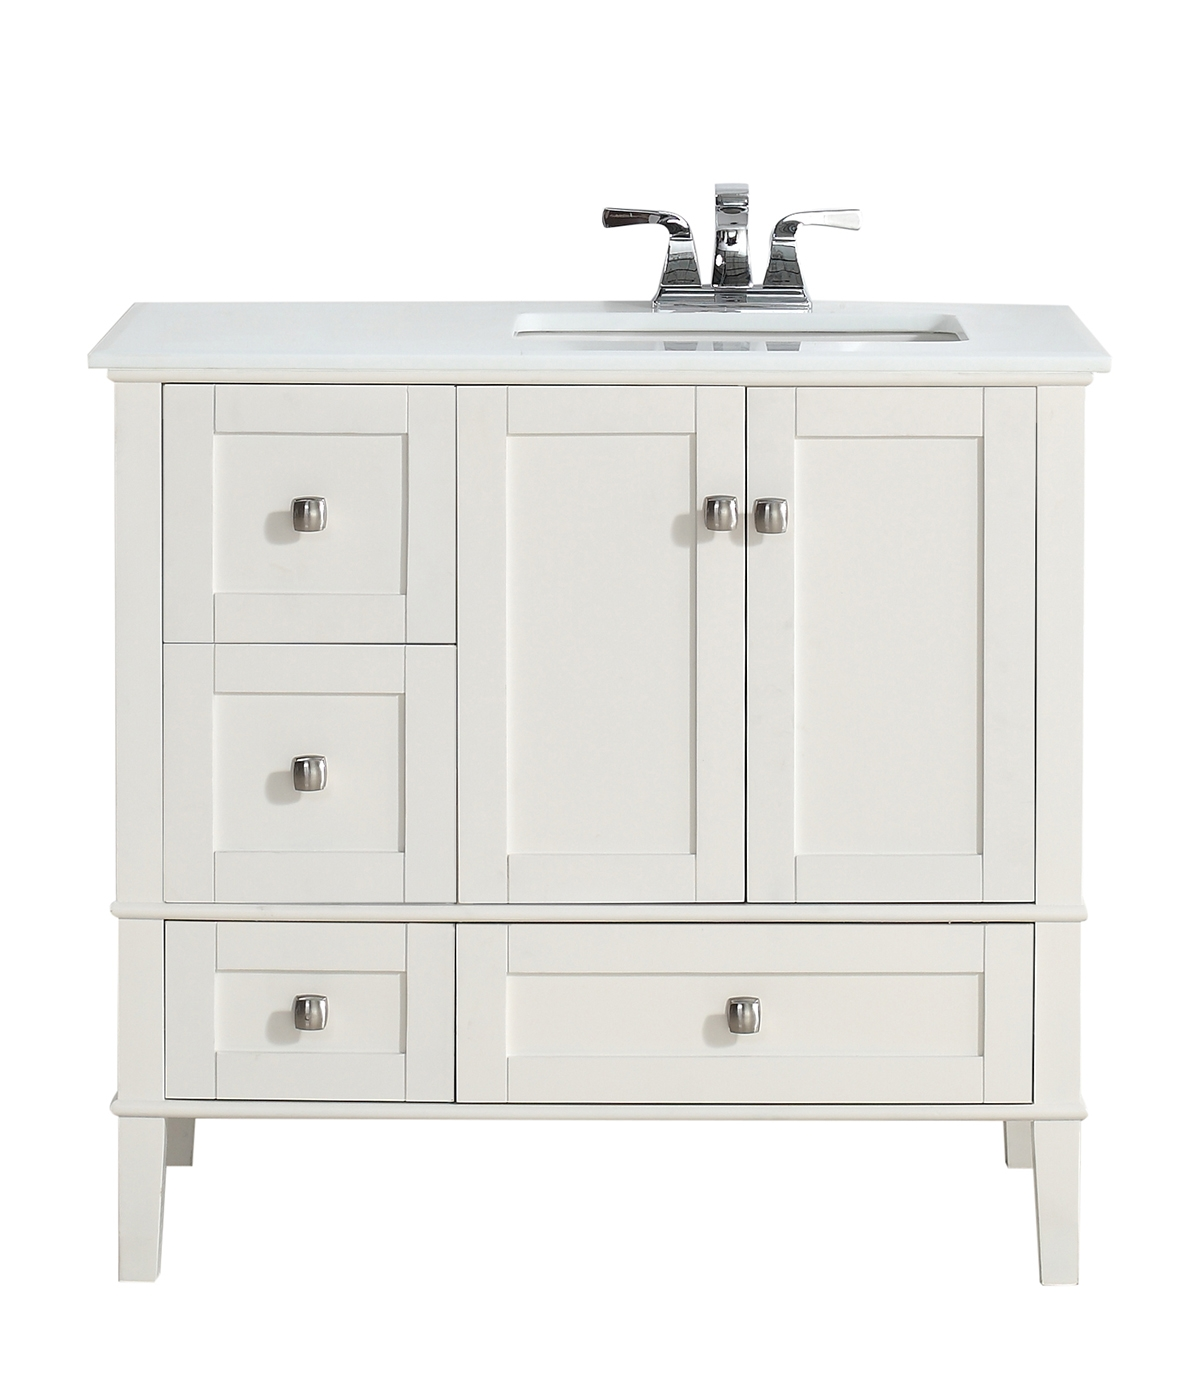 36 Inch Bathroom Vanity With Drawers On Left